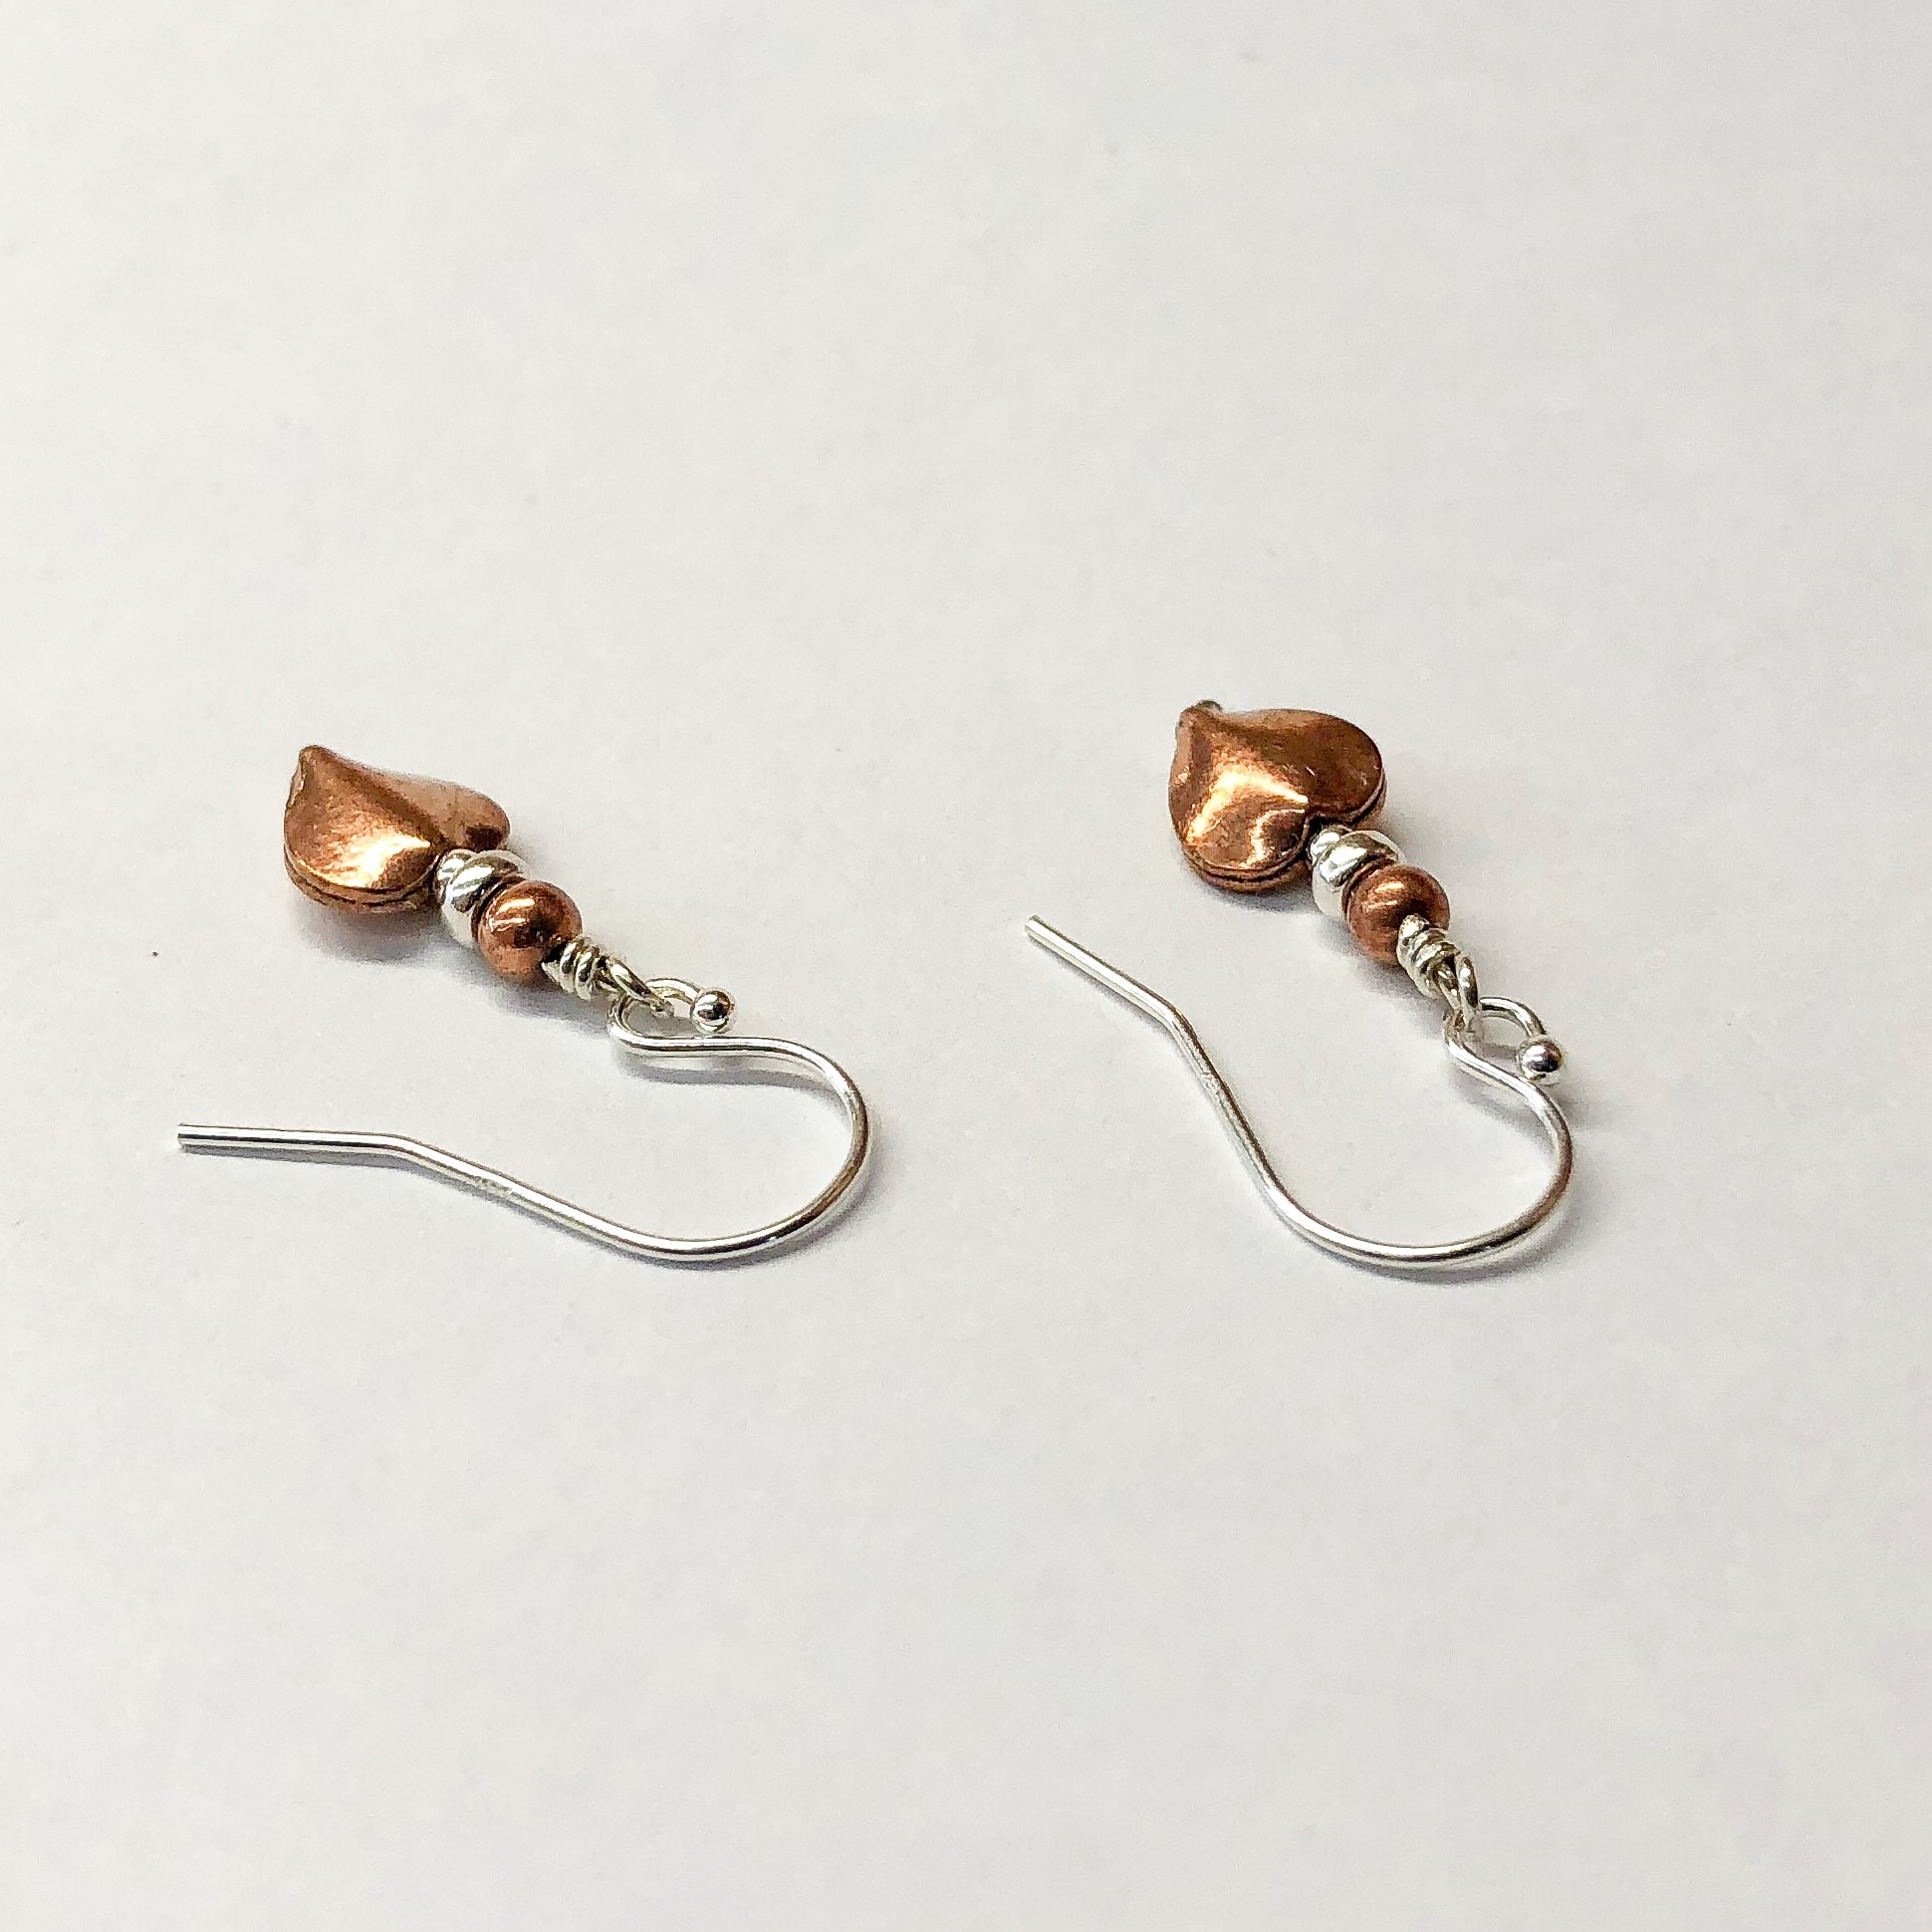 Real Copper Jewelry Copper Earrings 7 Year Anniversary Gift For Her Earrings Simple Graces Jewelry